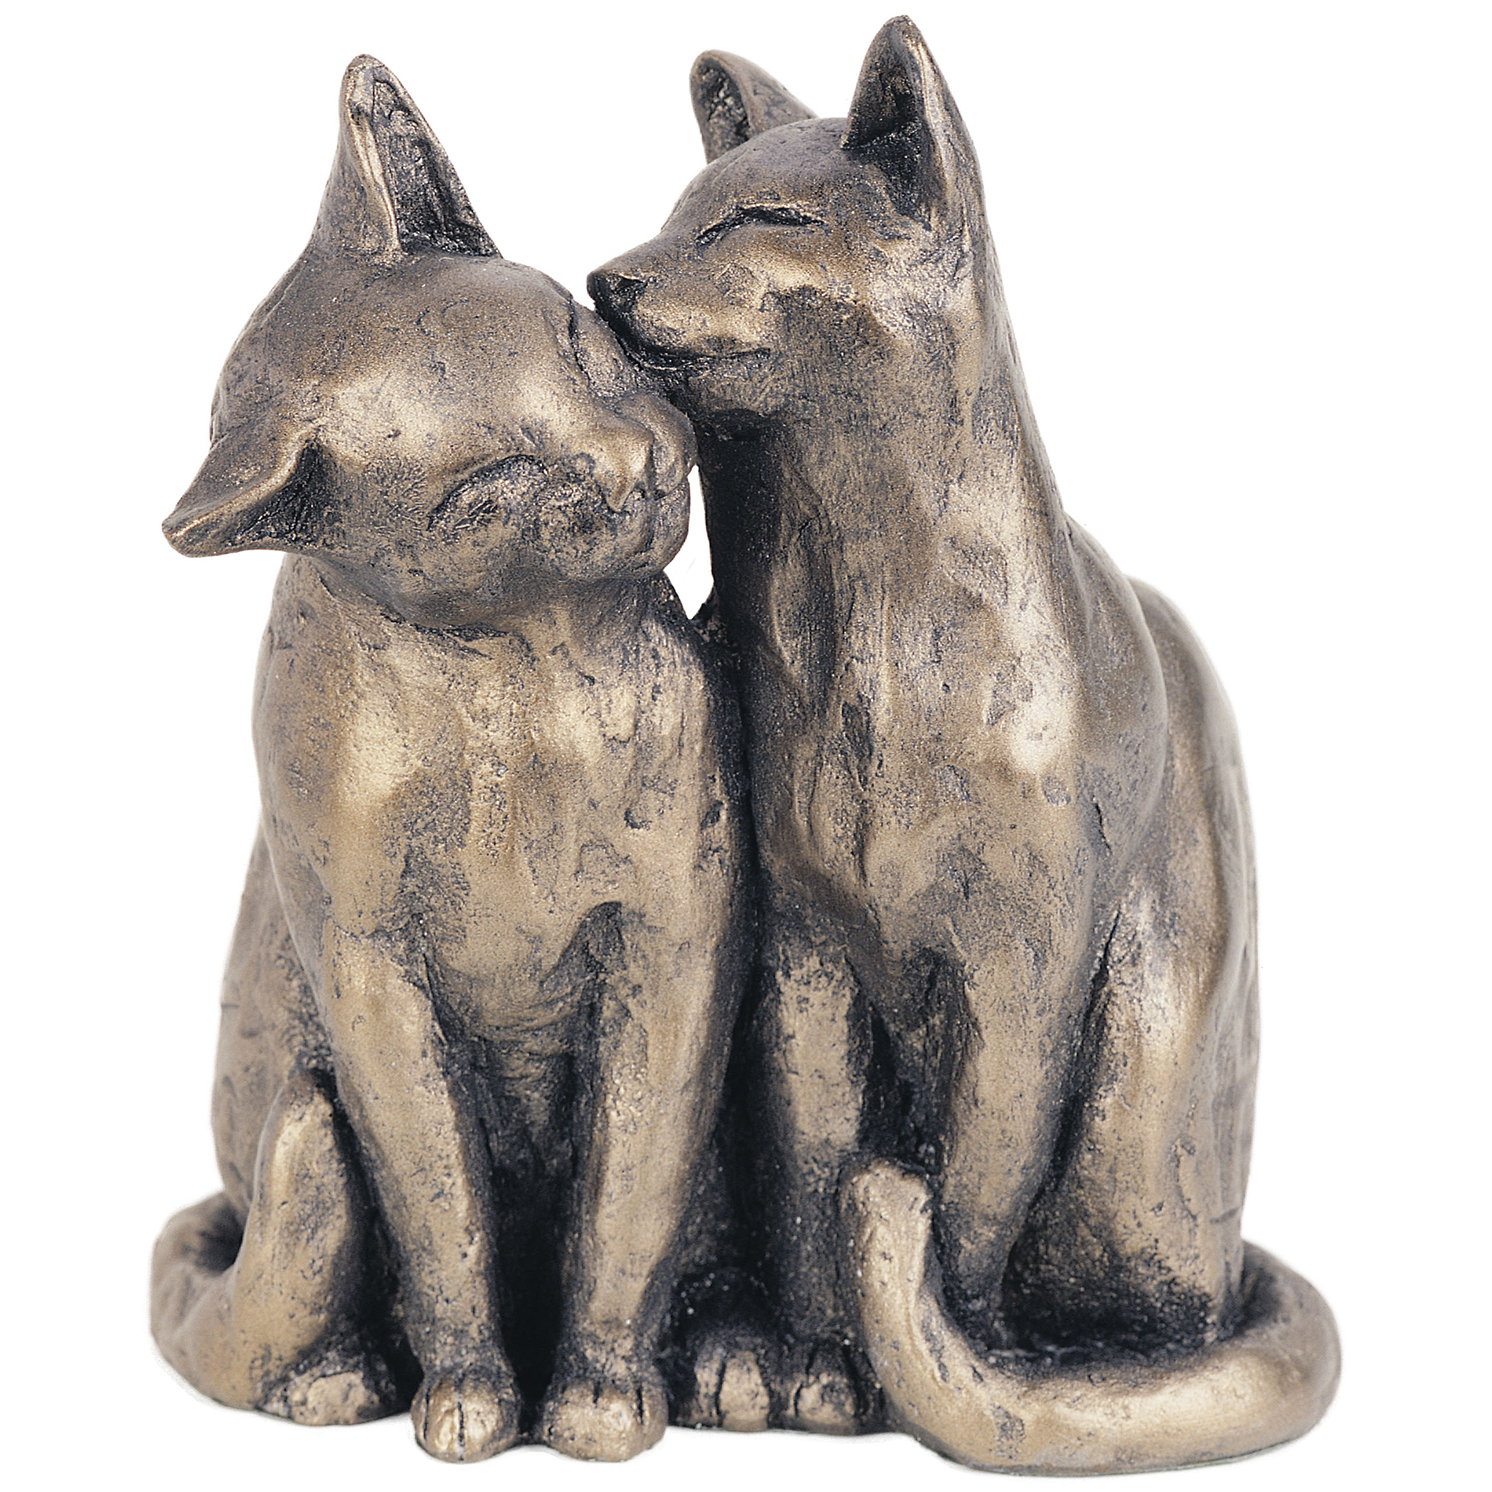 Frith Sculpture – Yum Yum and Friend in Bronze Resin by Paul Jenkins in Gift Box